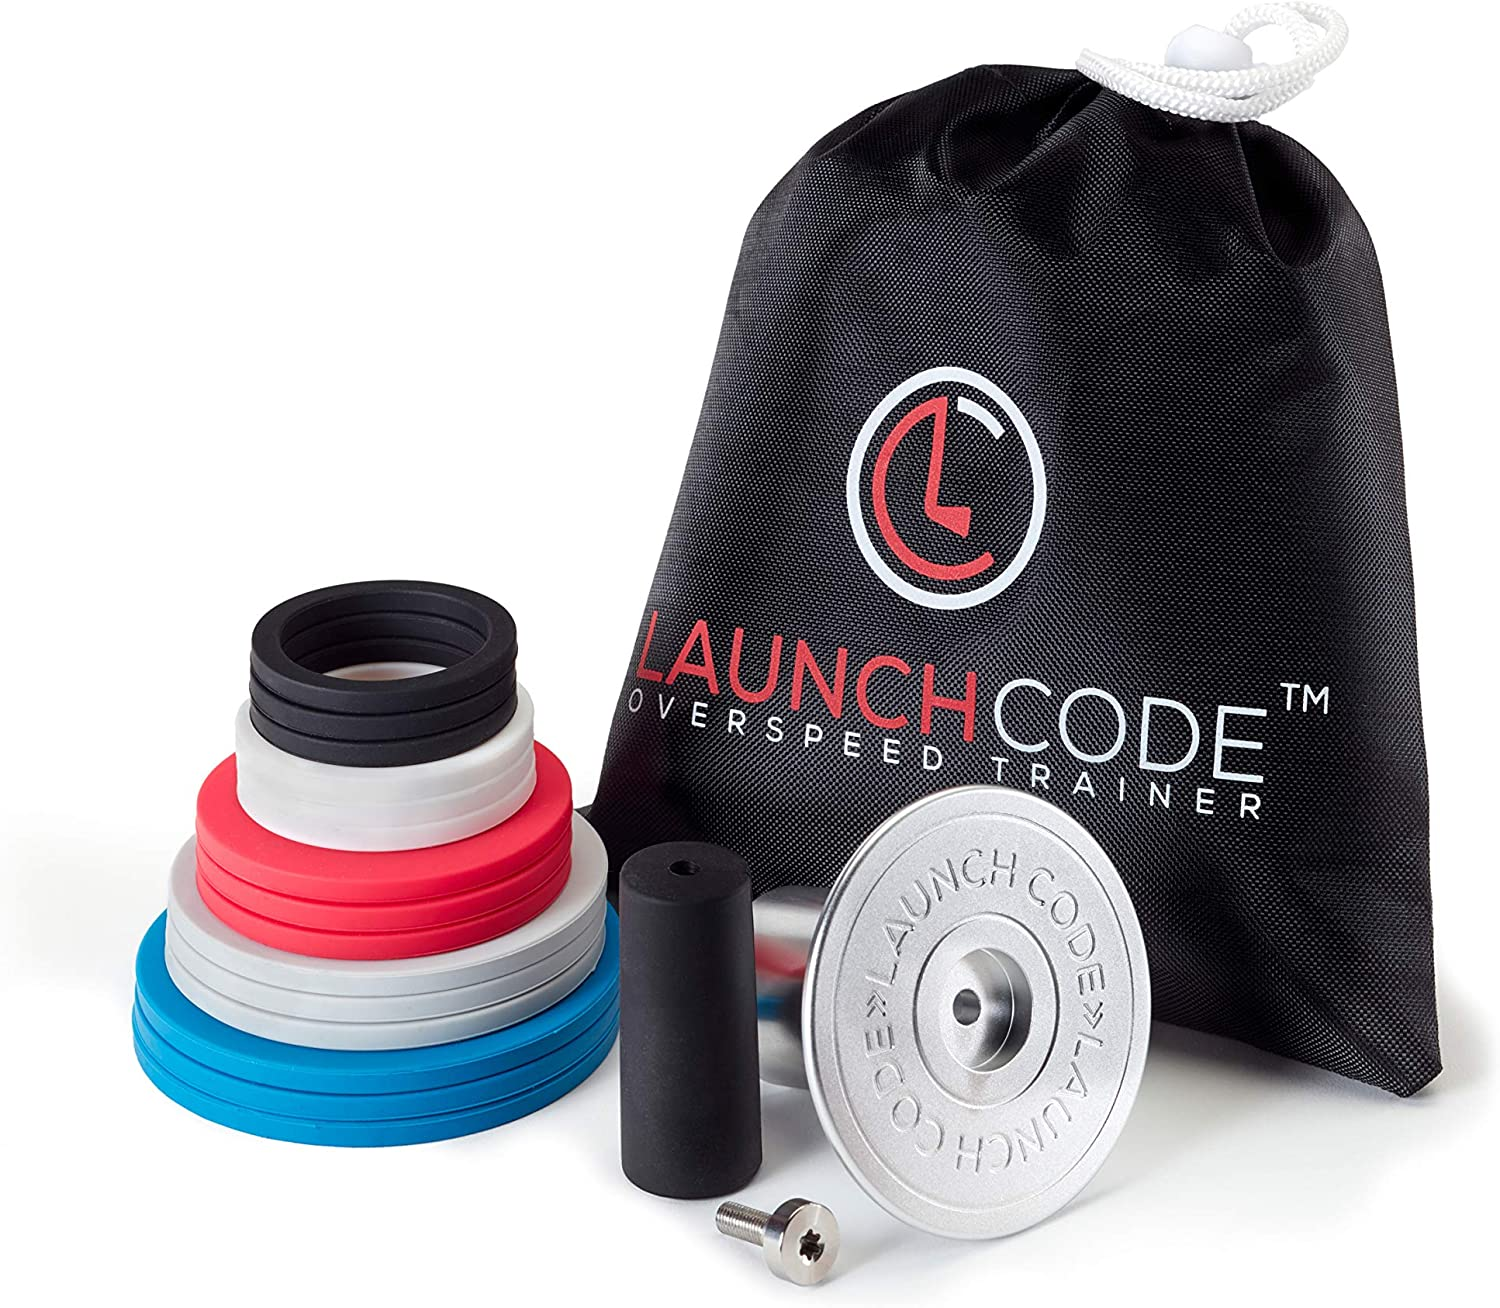 LAUNCH Max 79% OFF CODE Junior Overspeed Trainer Training for 5 popular Speed Swing